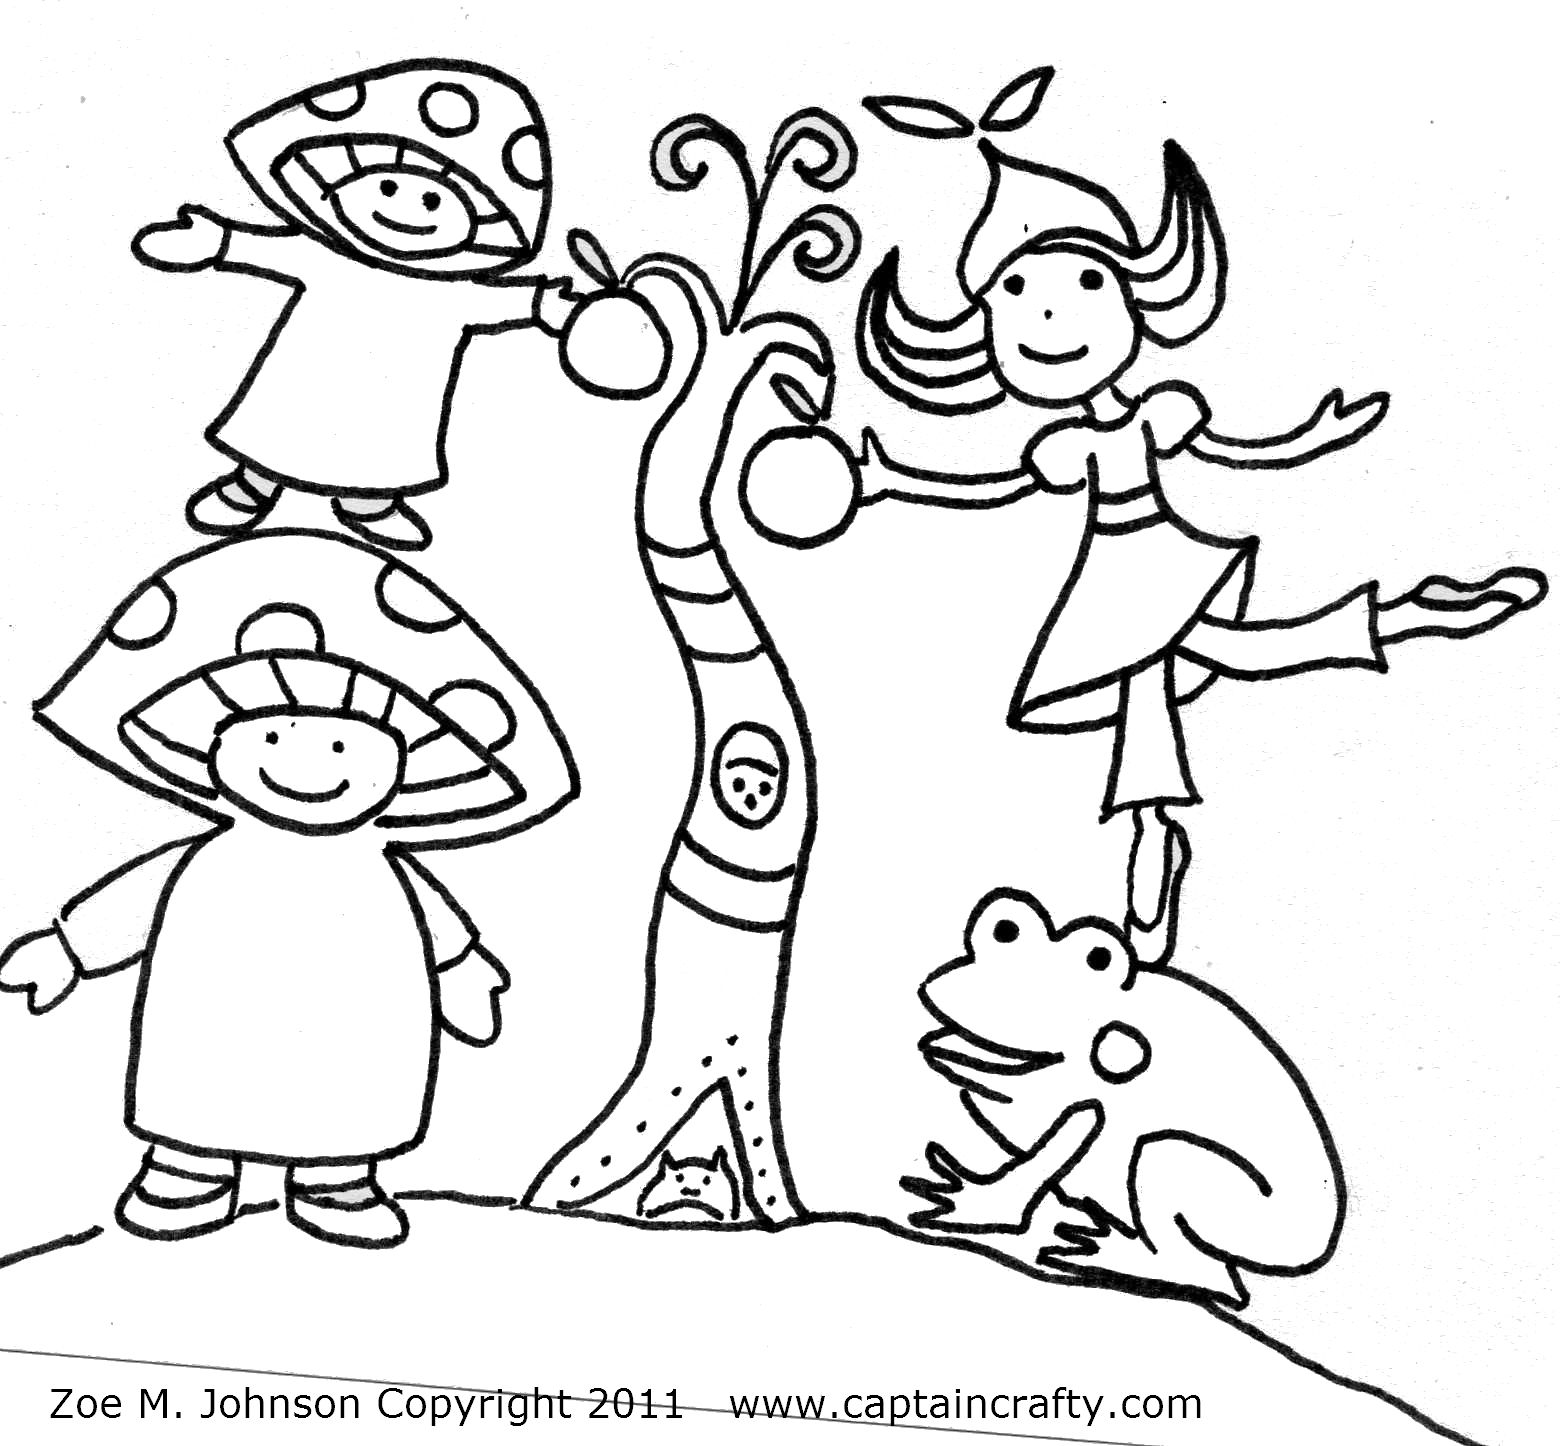 coloring pages of helping for kids - Google Search | kids crafts ...